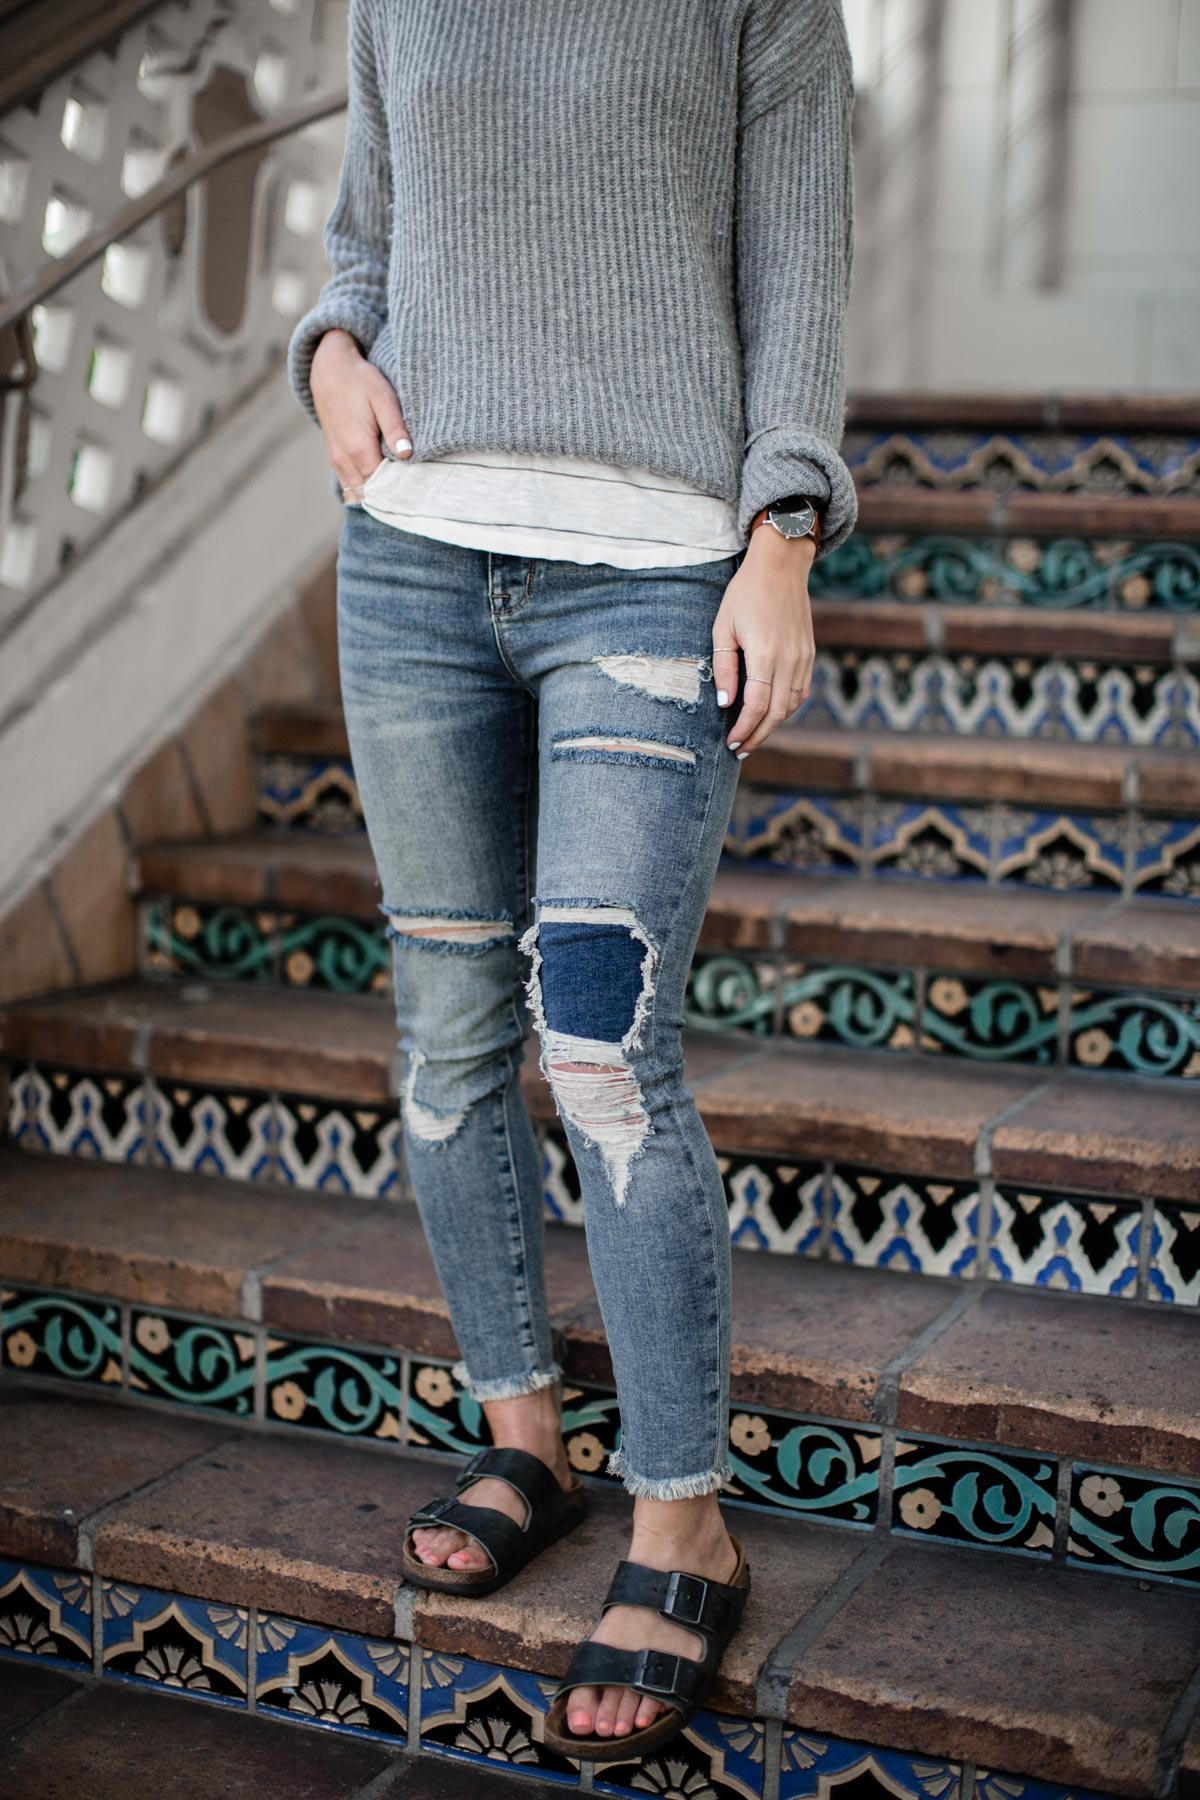 basic outfits with distressed denim, sweater, and birkenstock sandals